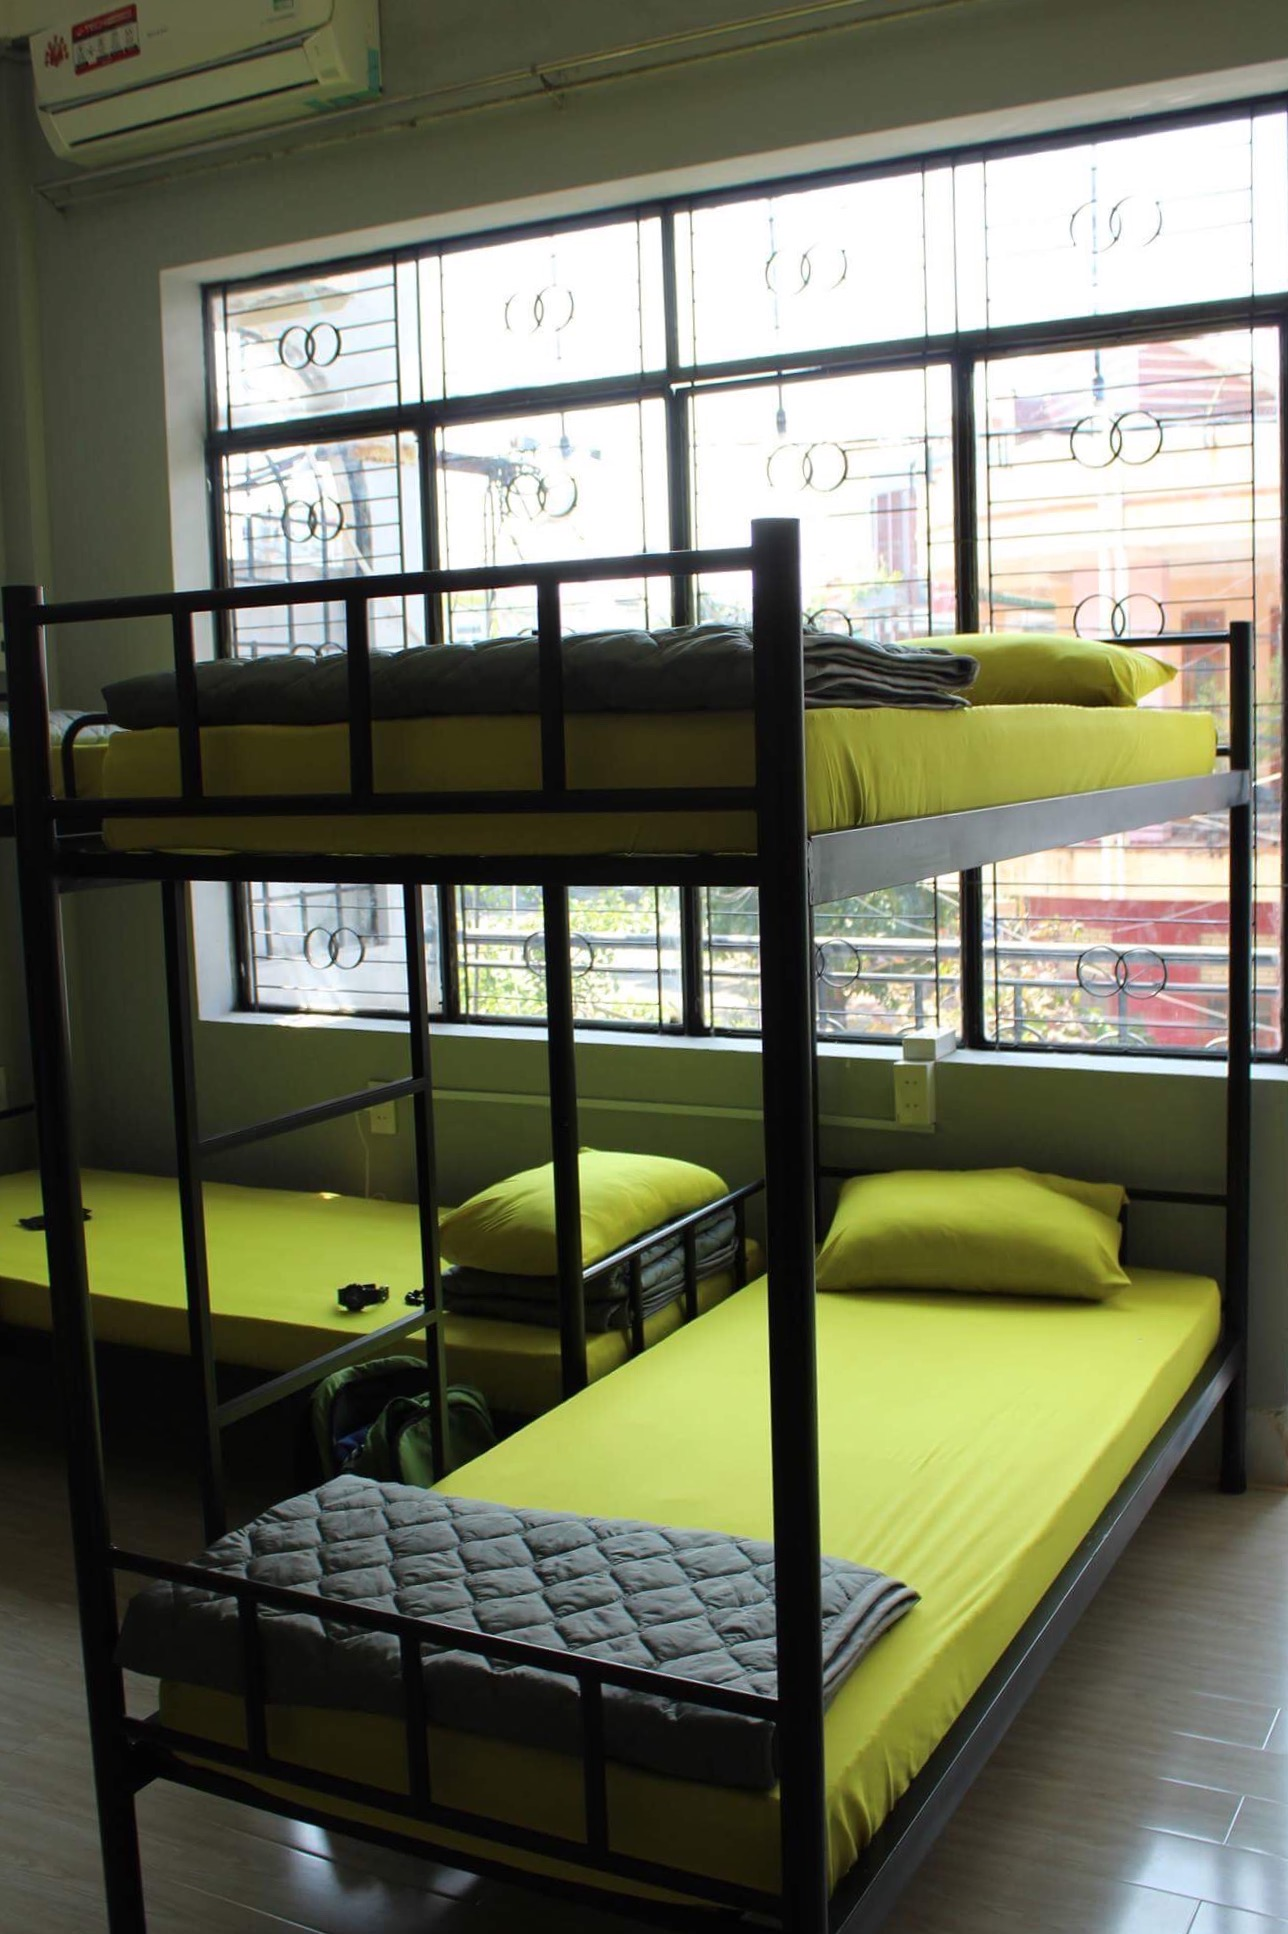 green beds at O.M.E hostel - Quy Nhon, Vietnam